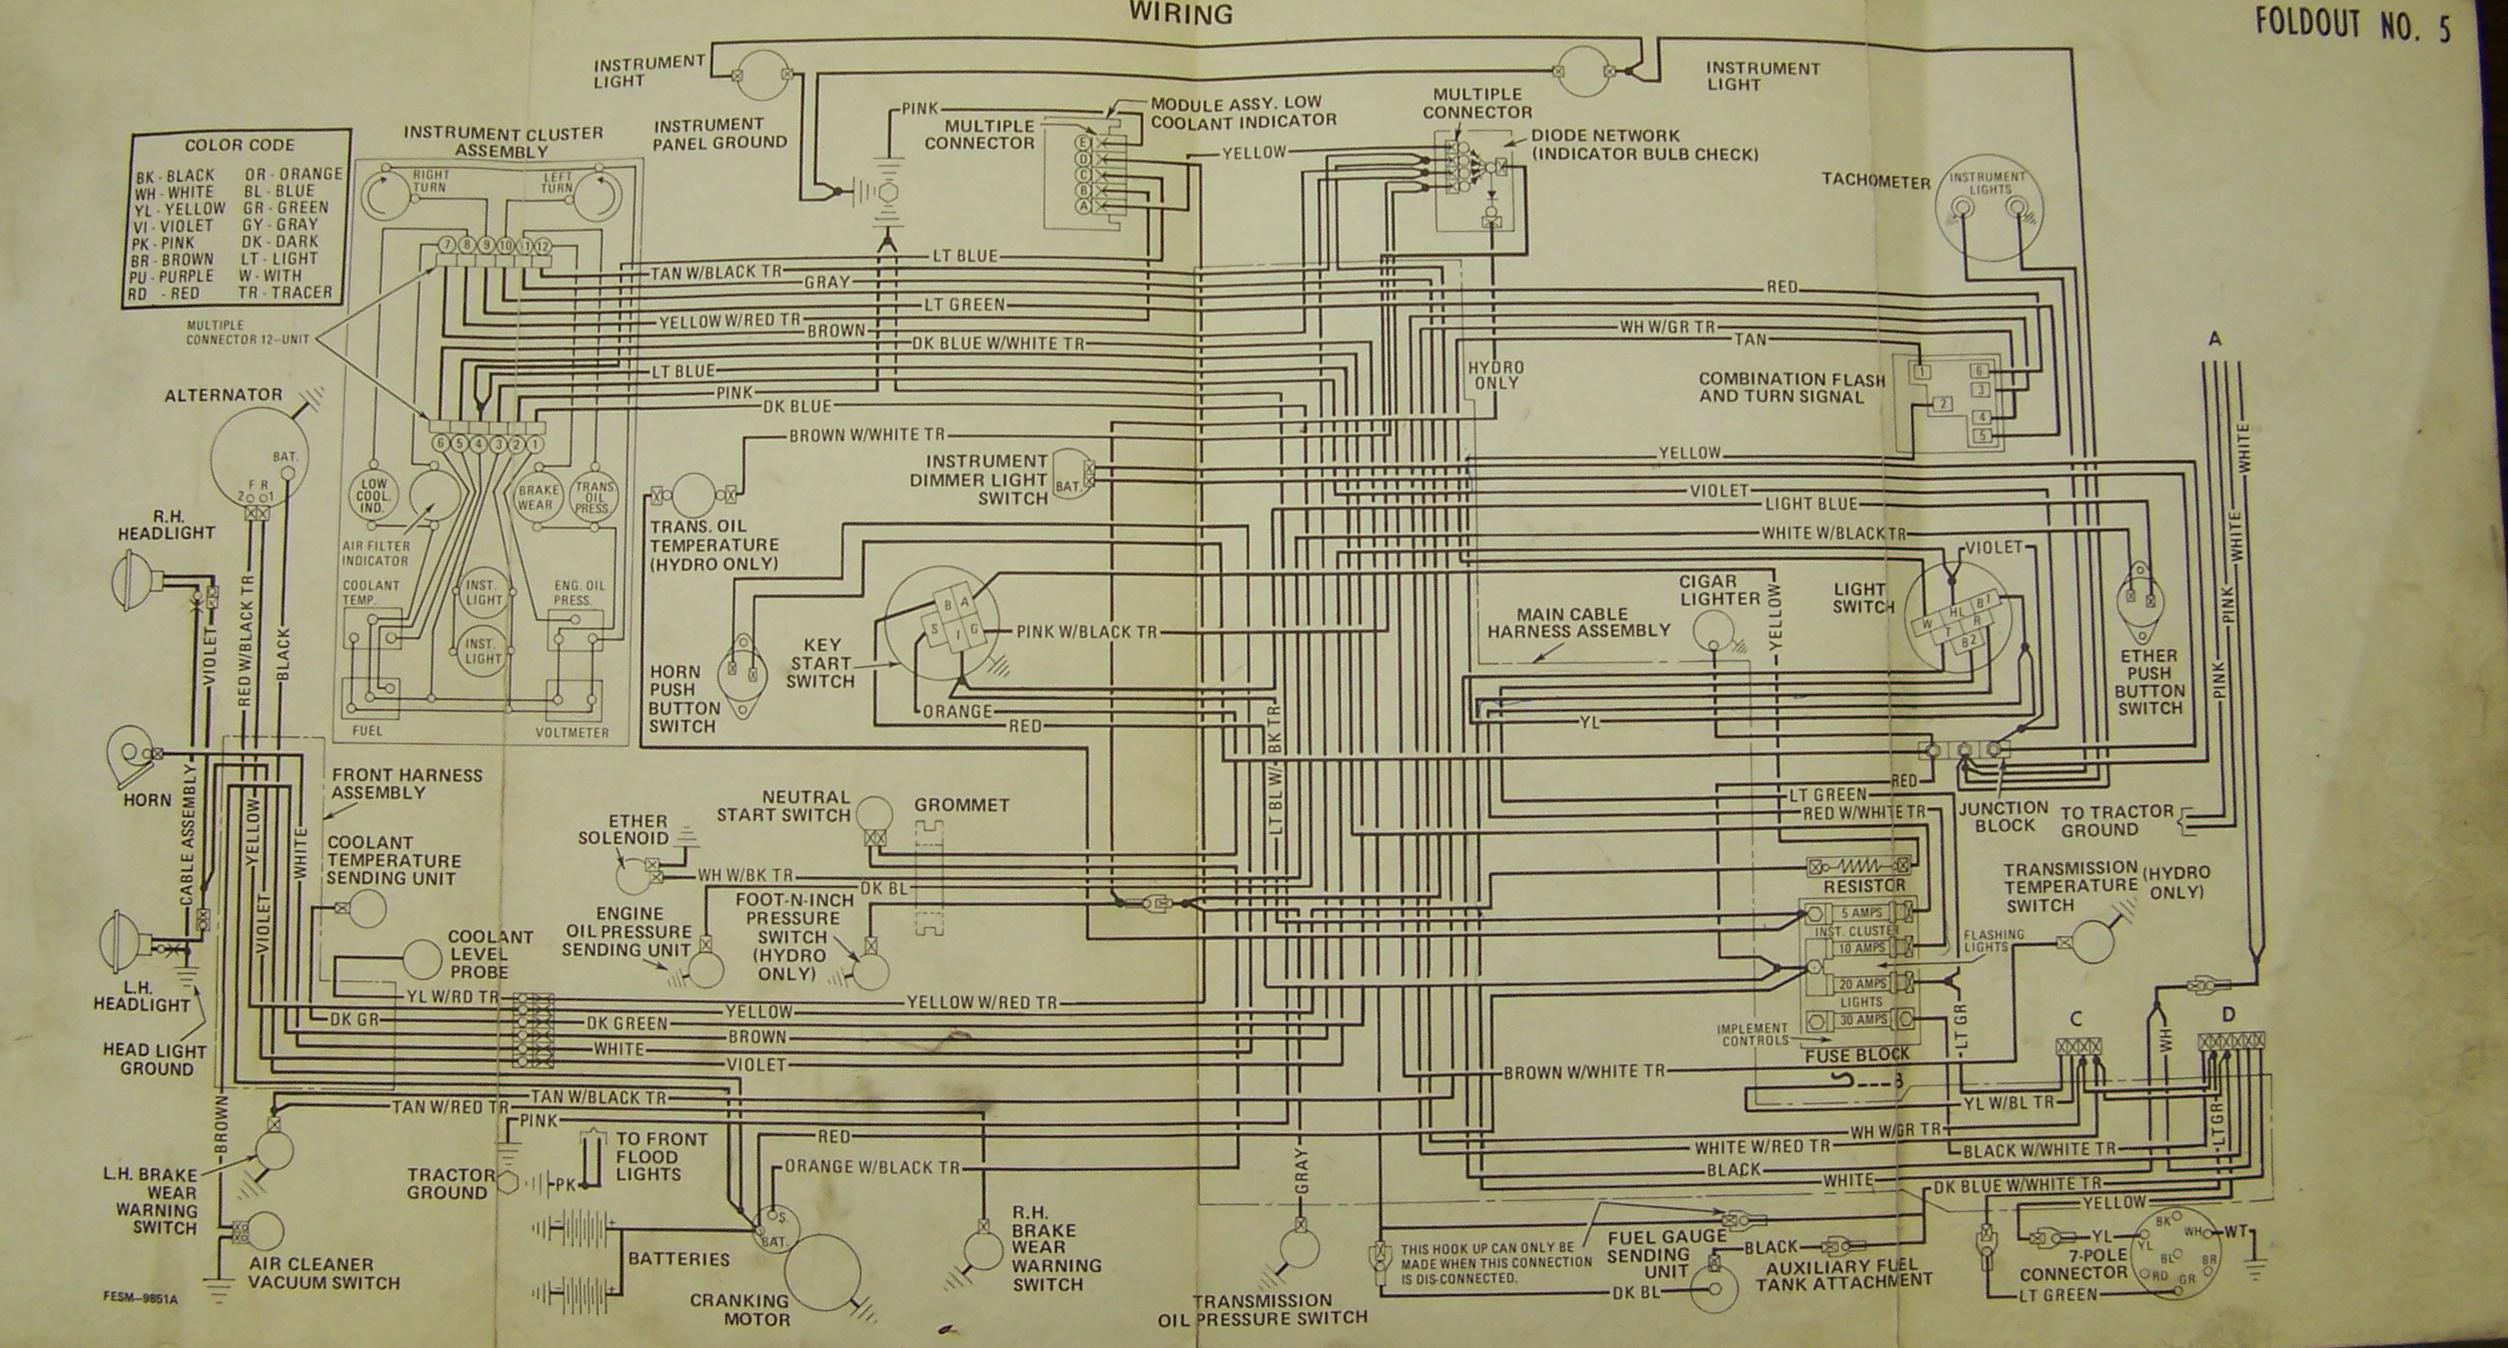 86series5 ih 574 wiring diagram case 430 tractor wiring diagram \u2022 wiring International 4300 Wiring Diagram Schematics at metegol.co